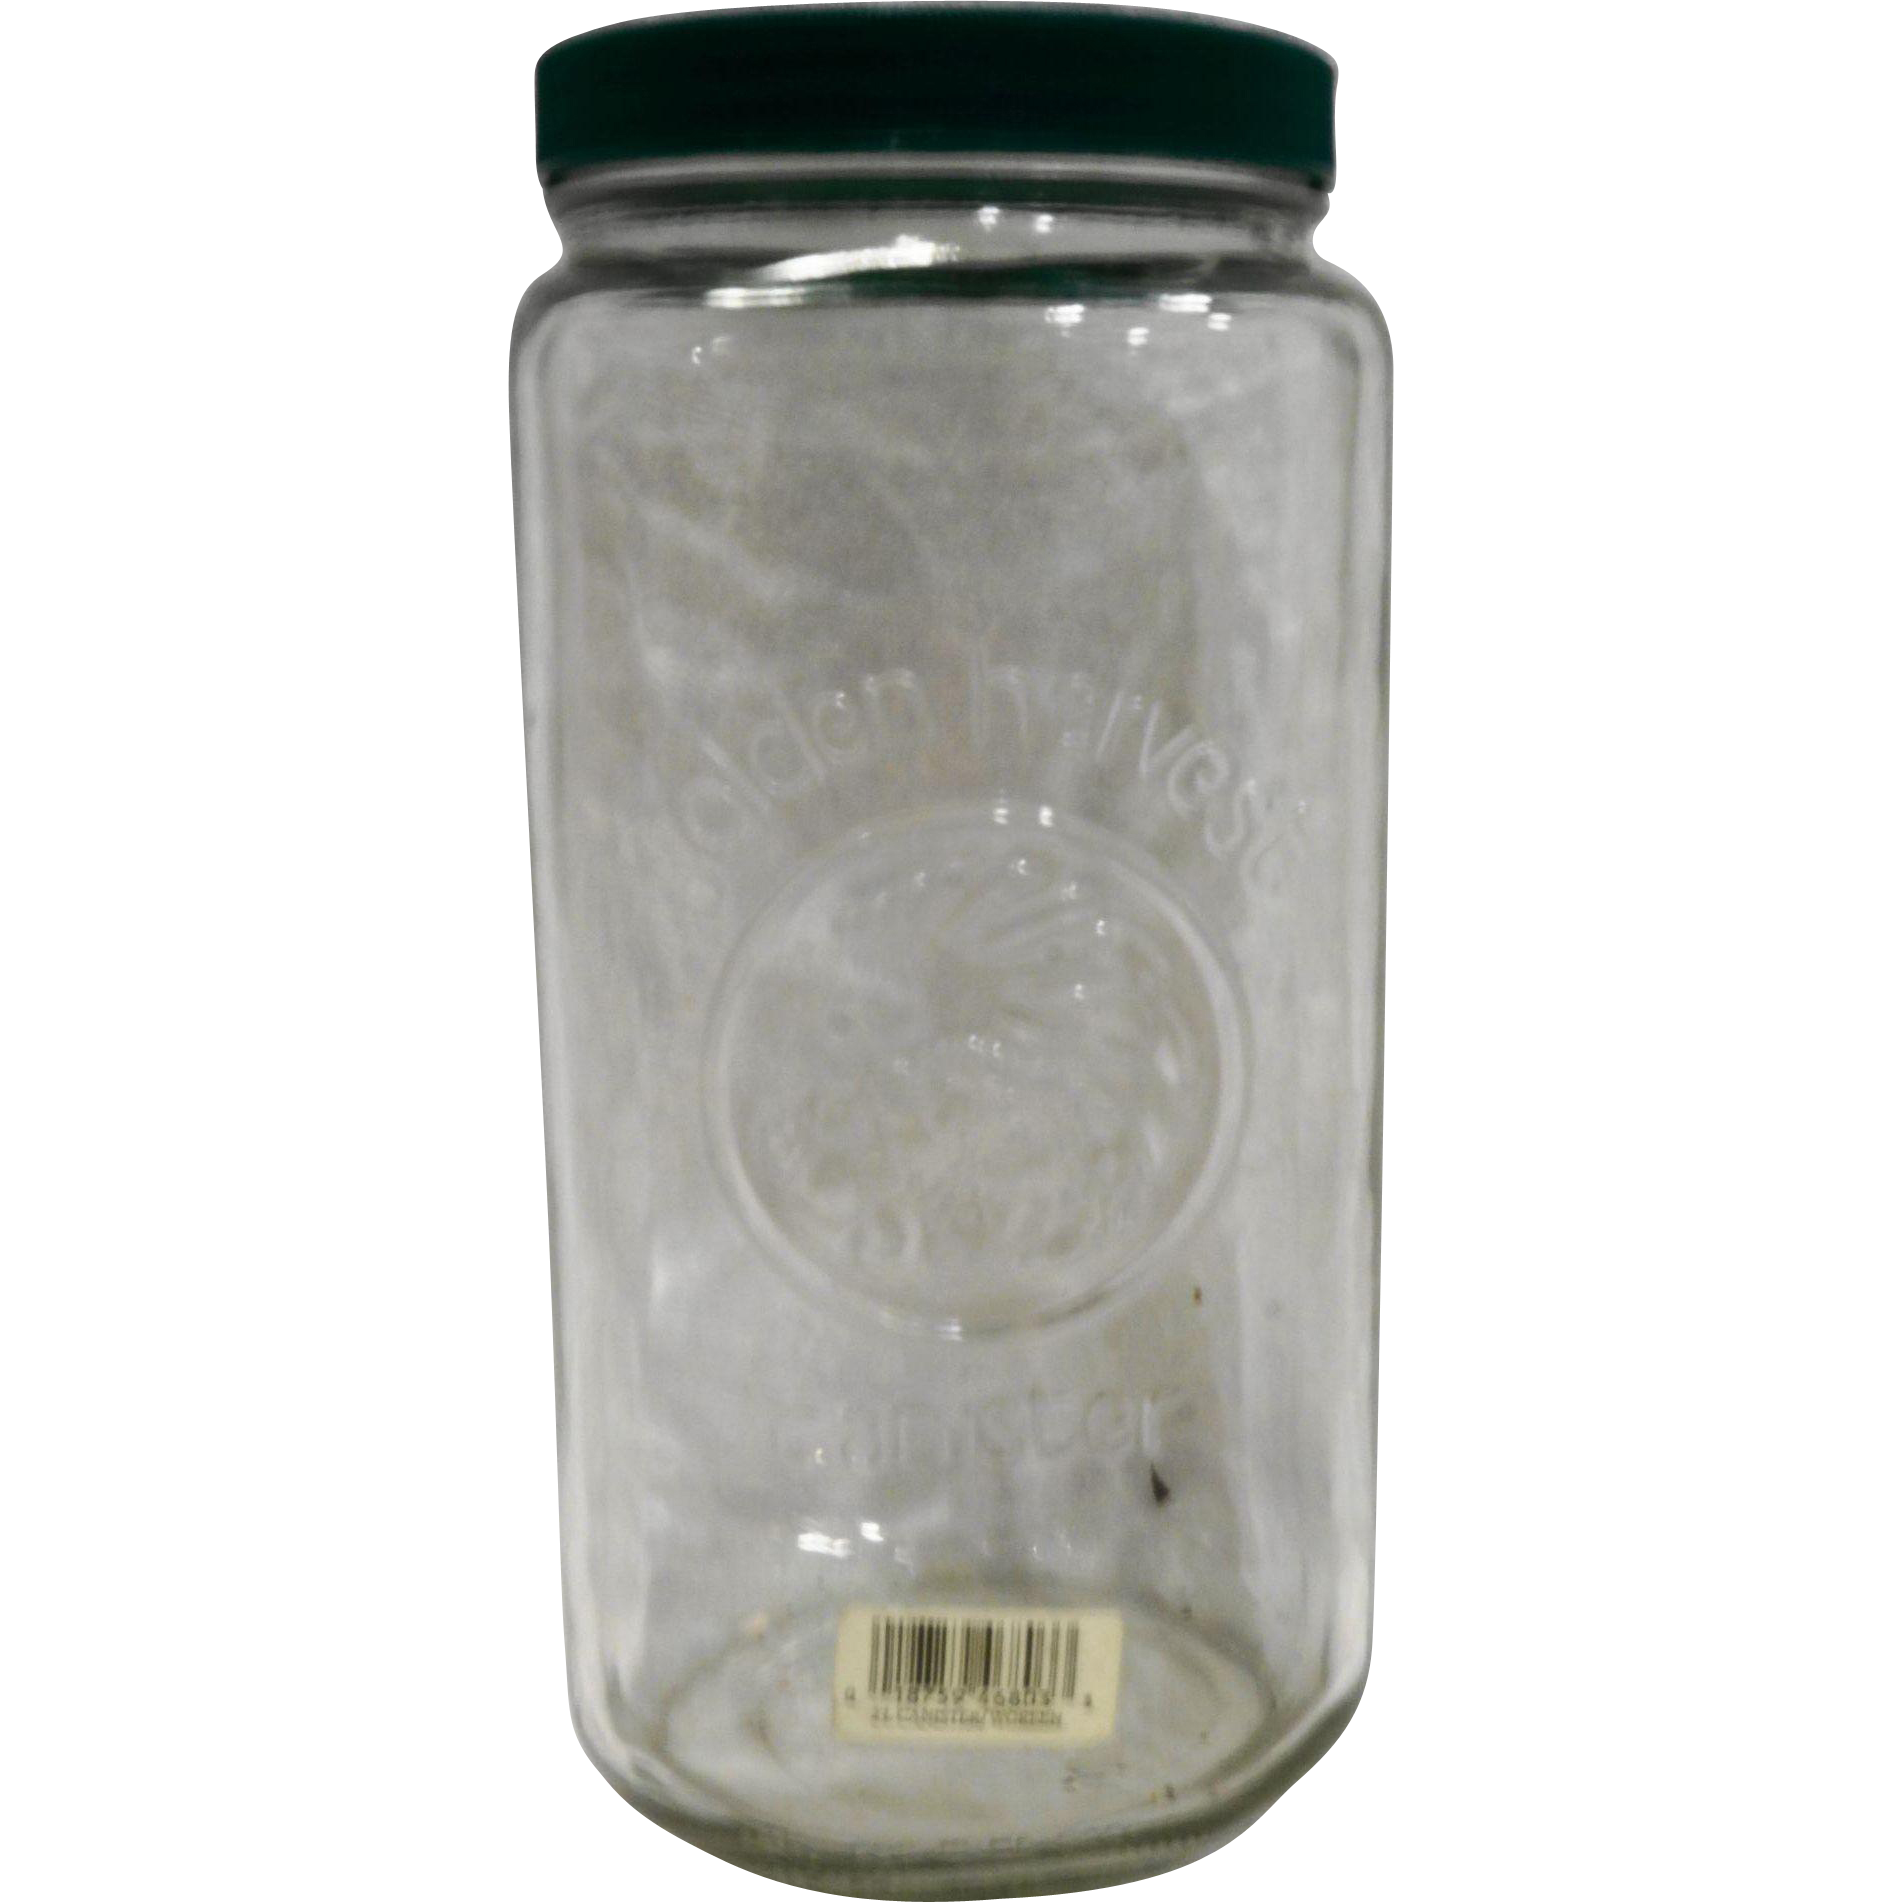 golden harvest clear glass canister 2l tall green lid glass golden harvest clear glass canister 2l tall green lid